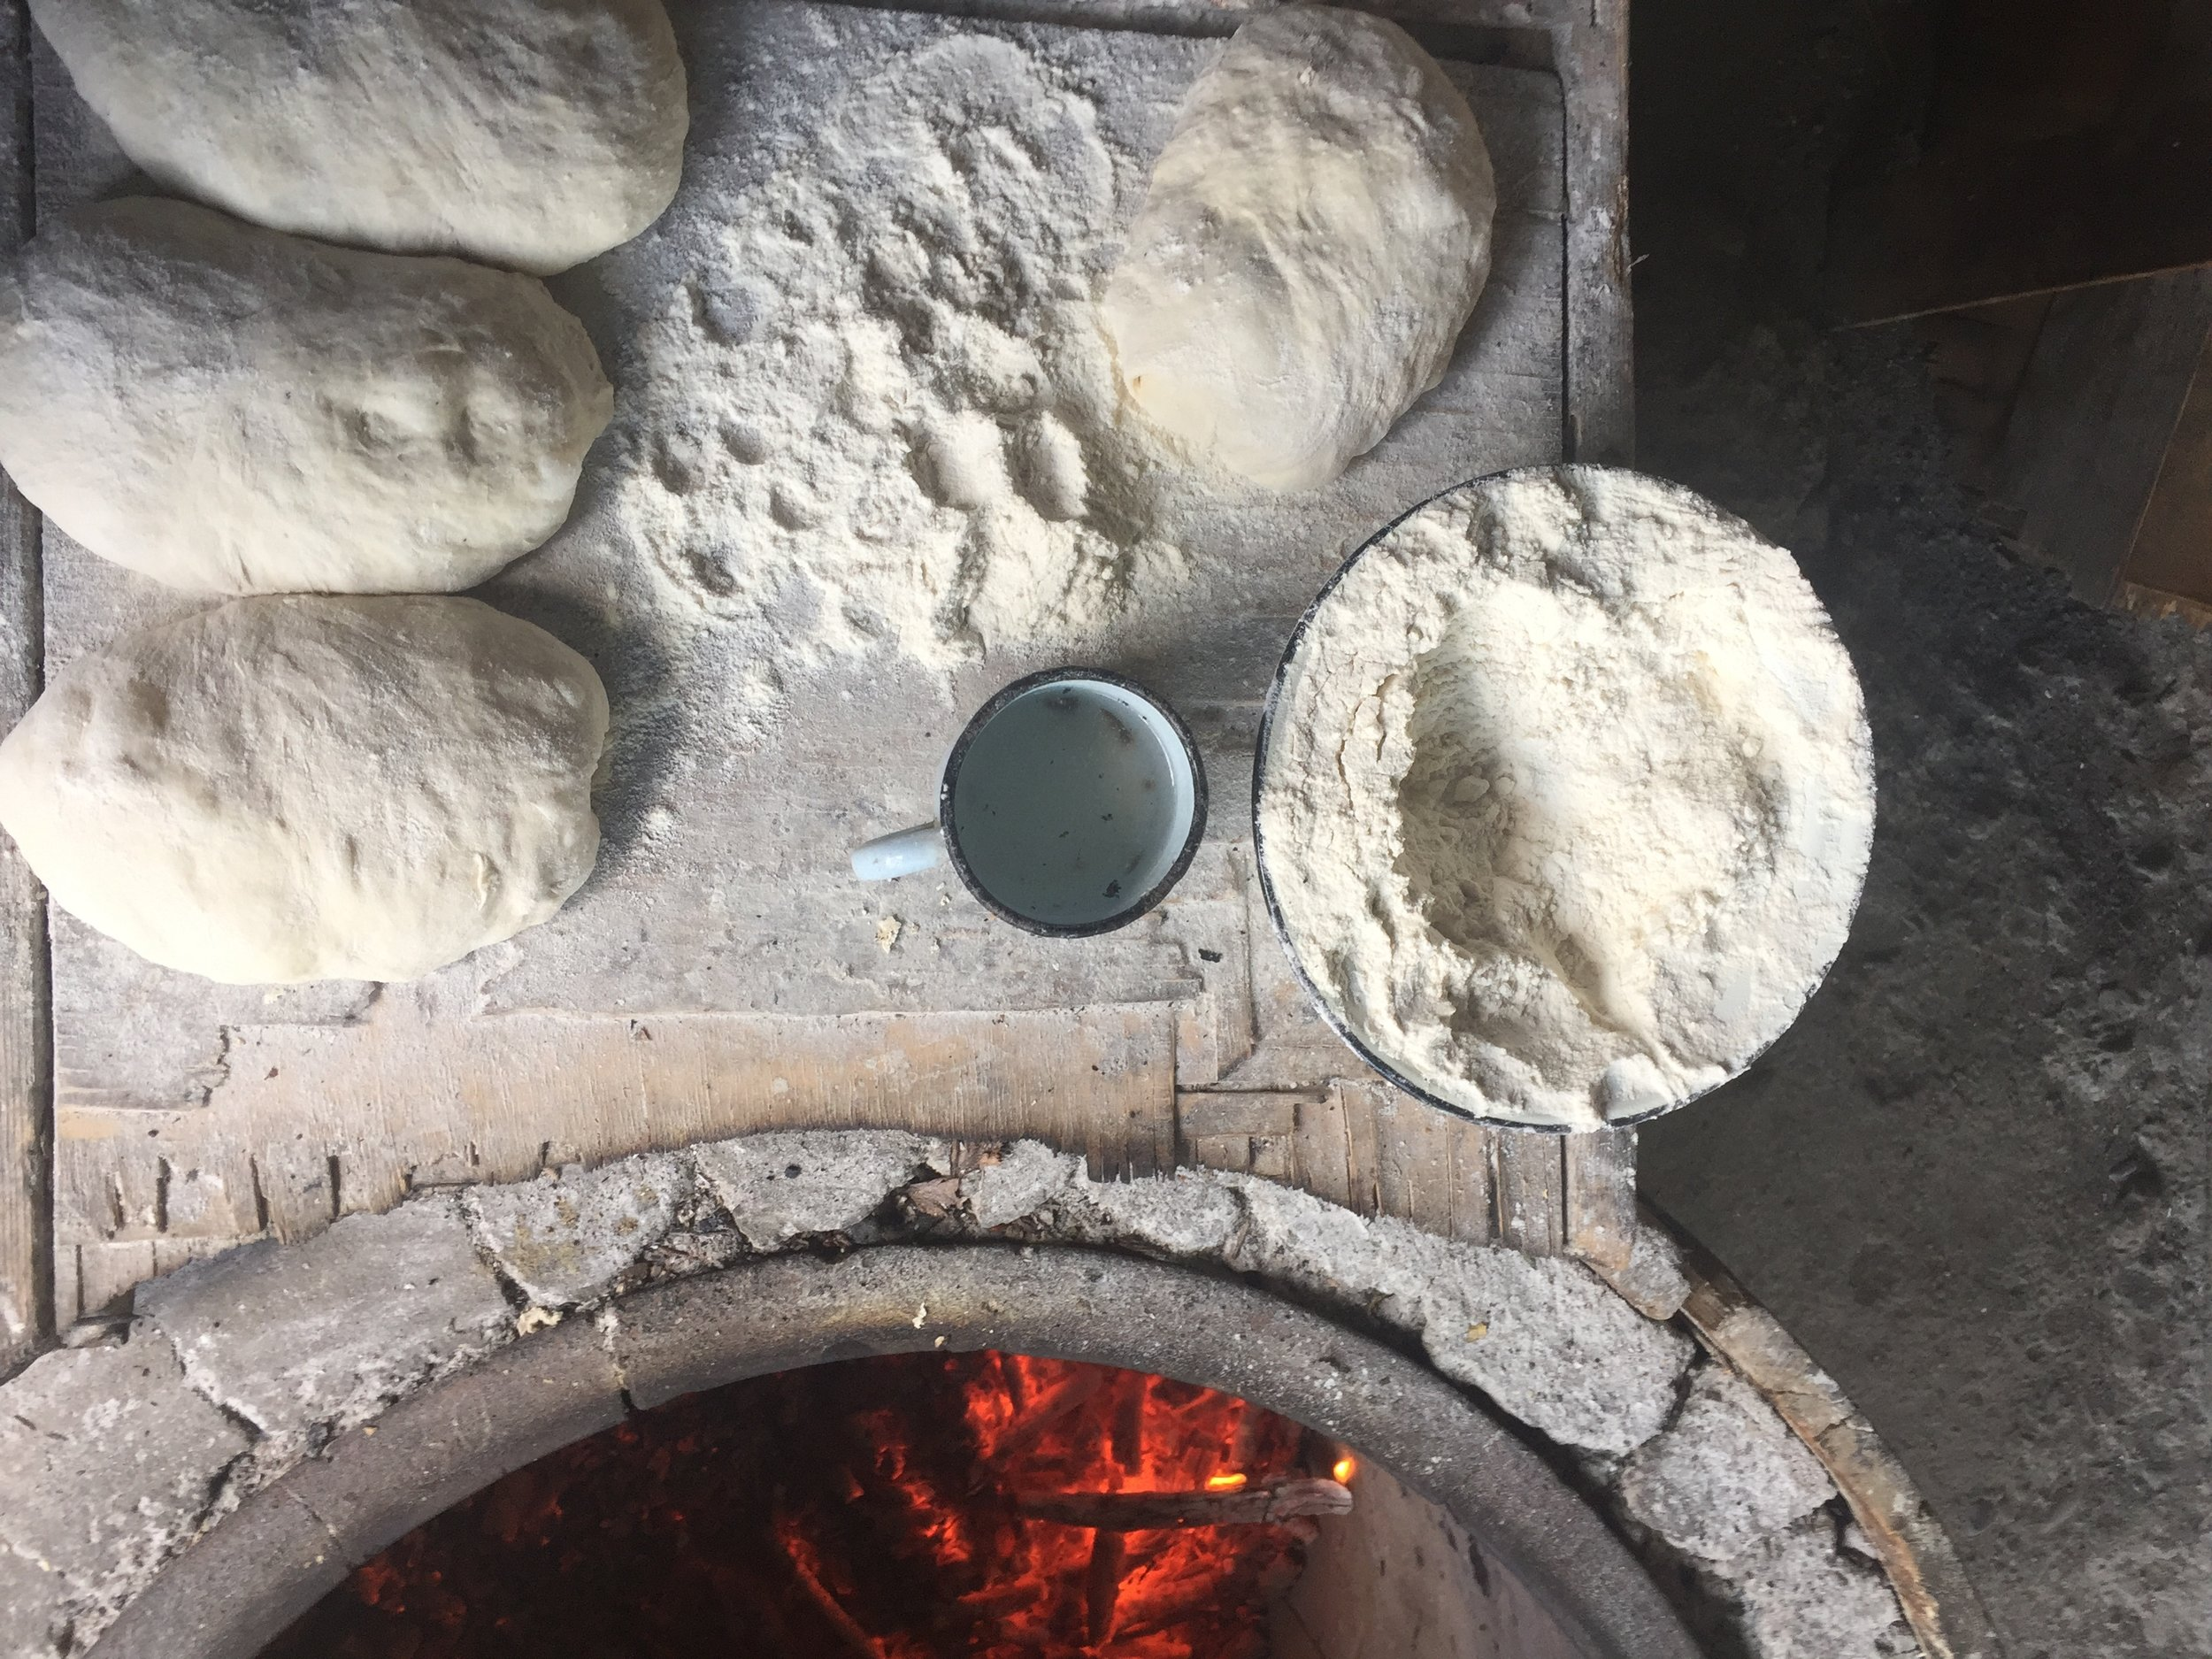 Dough before it meets the fire